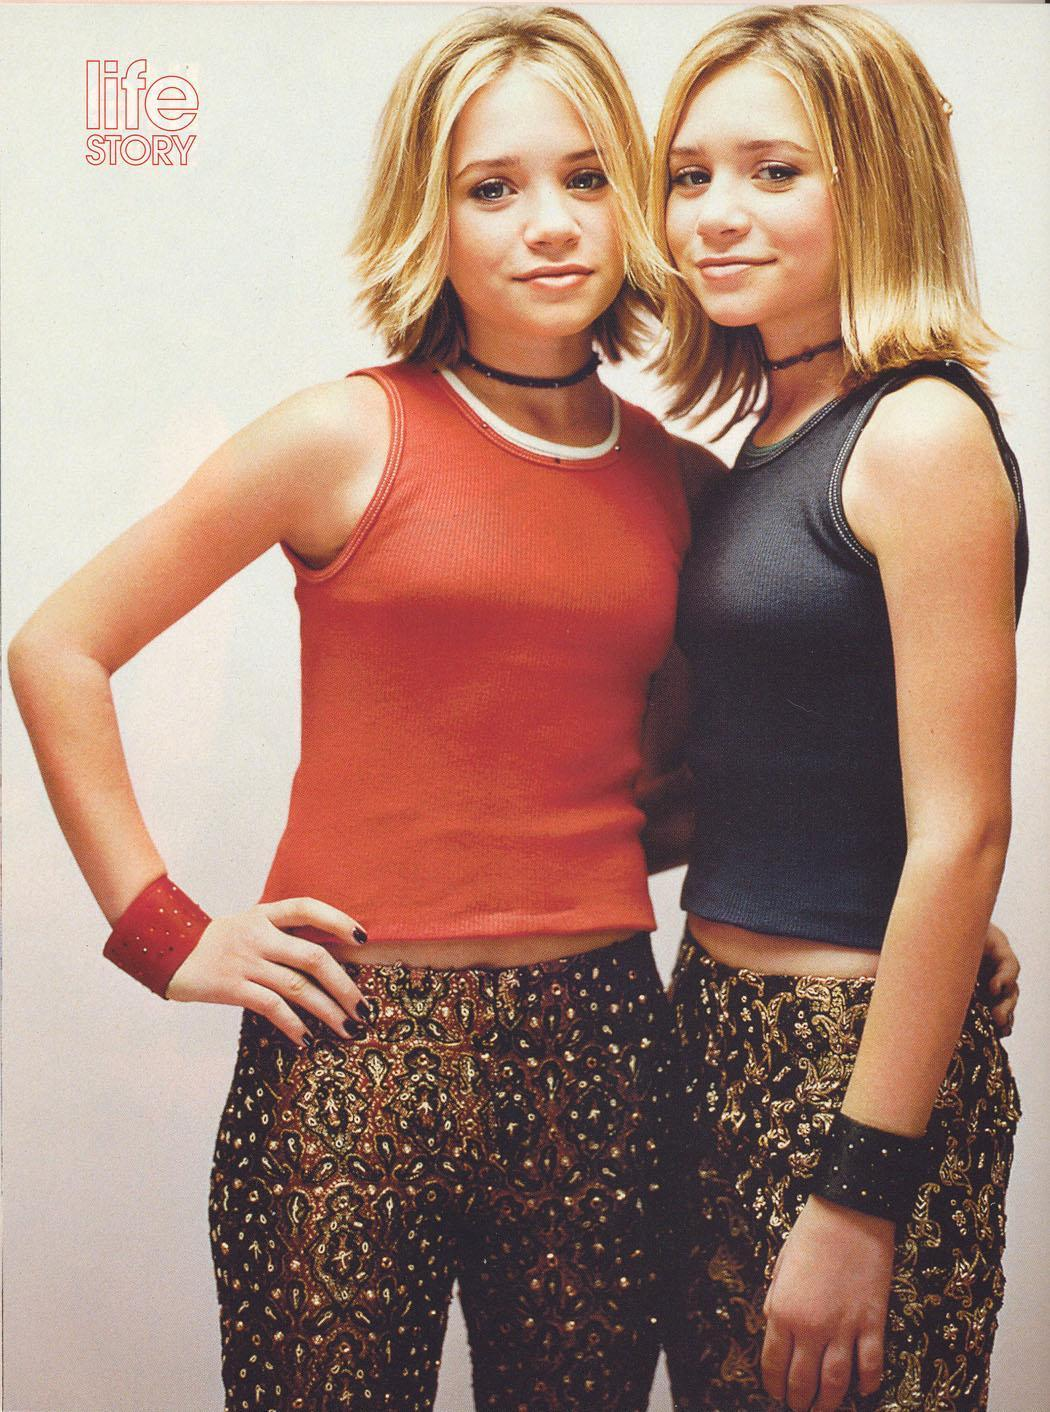 Mary-kate and ashley olsen nude iphone photos